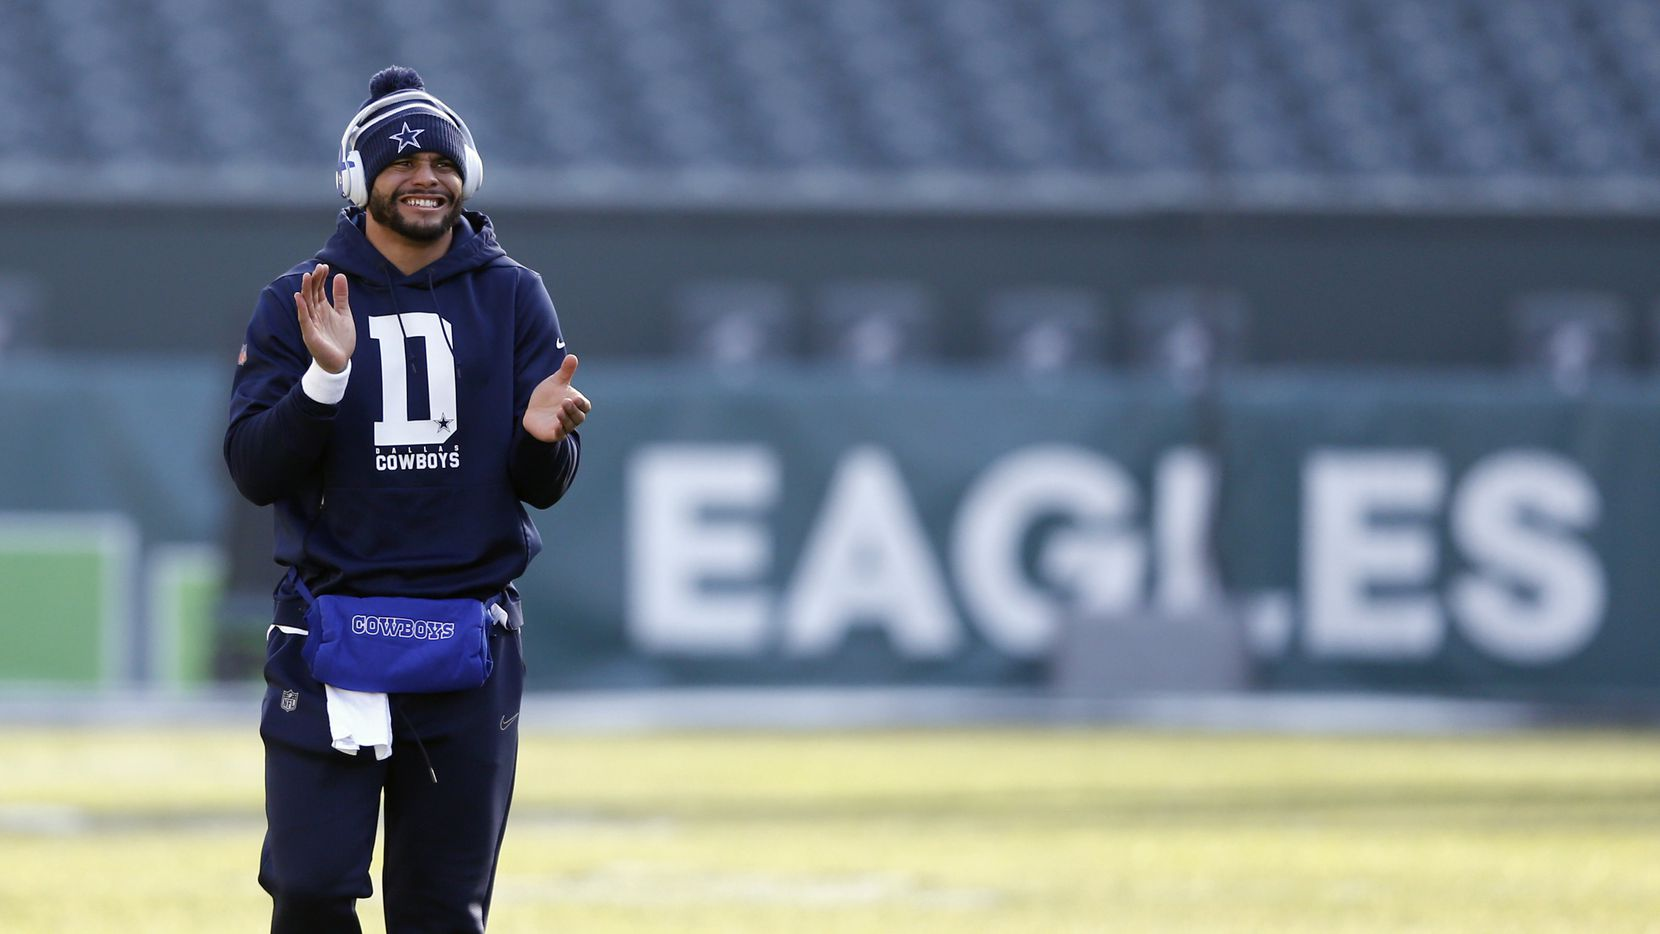 Dallas Cowboys quarterback Dak Prescott (4) claps as he walks up the field before warmups prior to a game against the Philadelphia Eagles at Lincoln Financial Field in Philadelphia on Sunday, December 22, 2019.